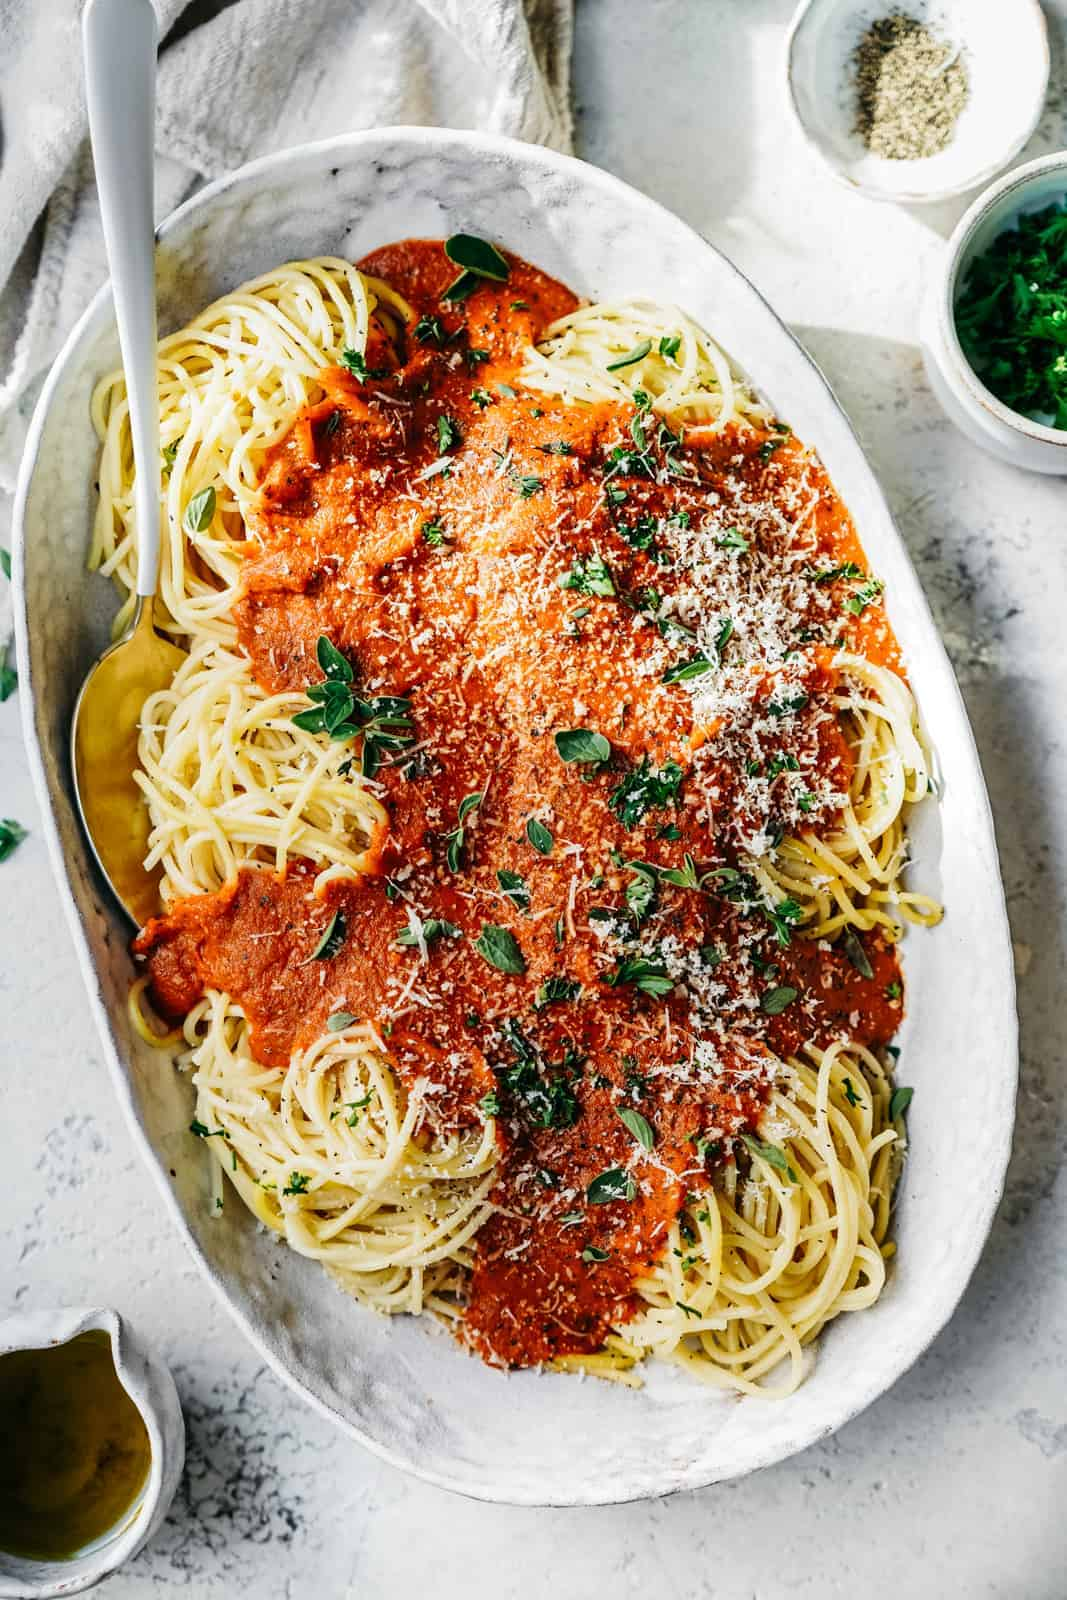 Big serving dish of Spaghetti with Vegan Pasta Sauce and vegan parmesan cheese sprinkled on top.